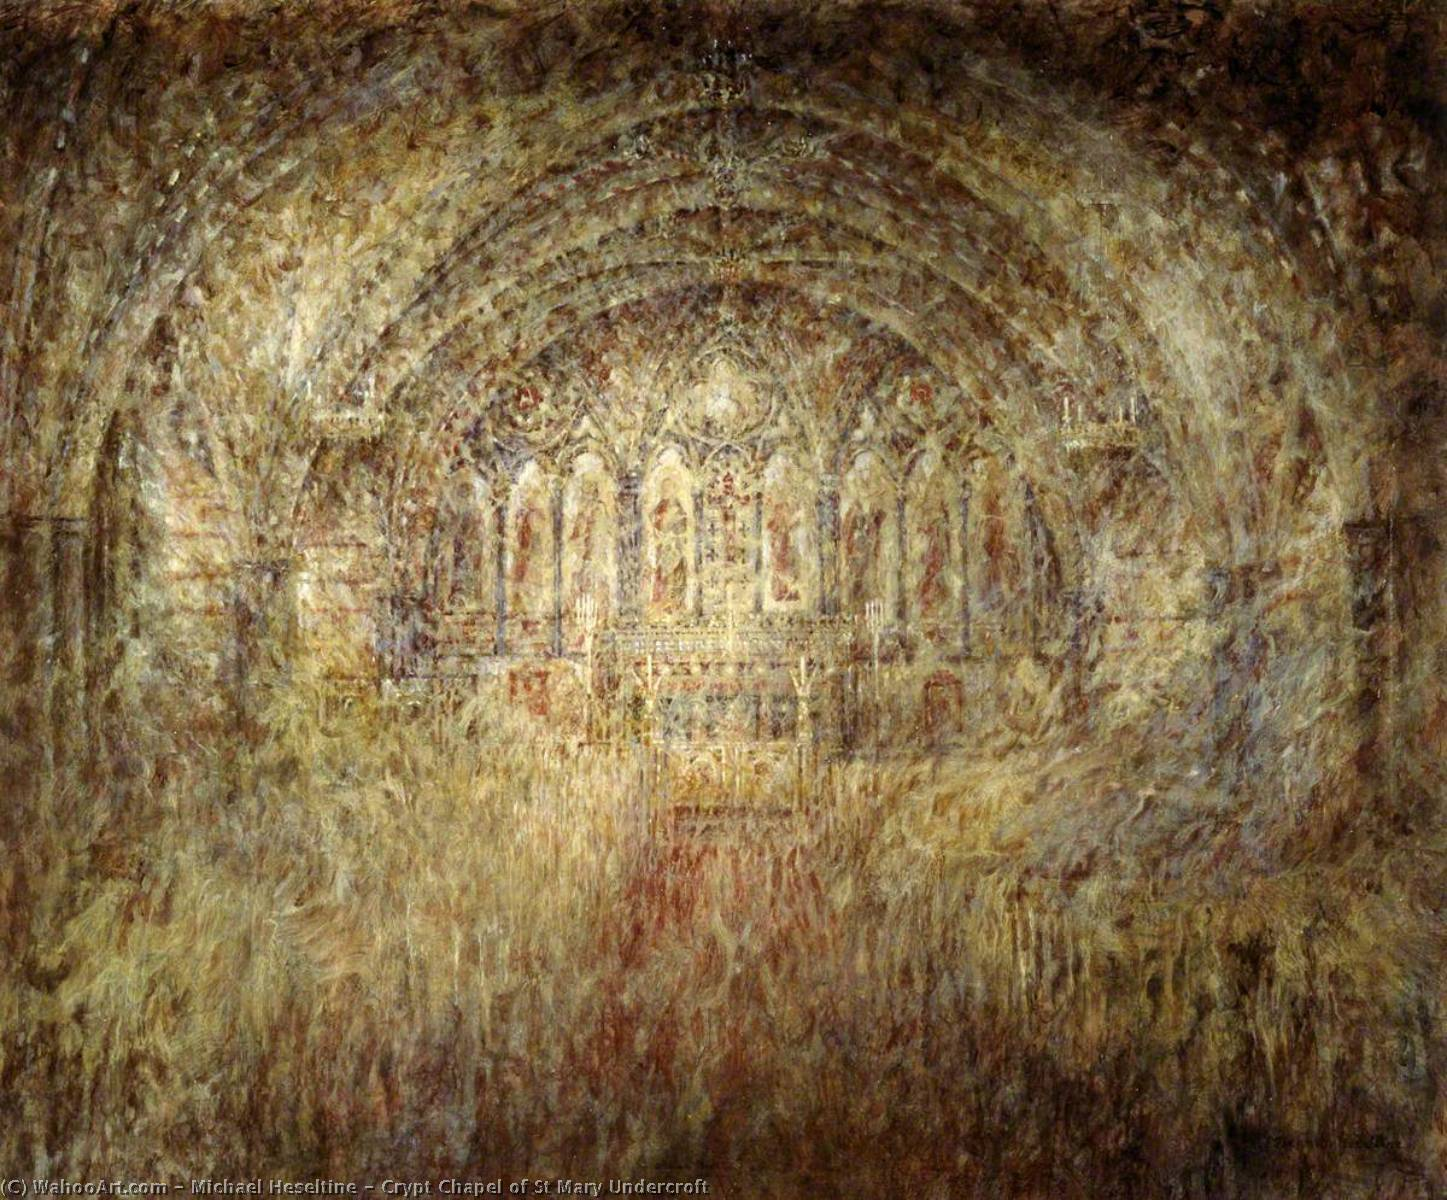 Crypt Chapel of St Mary Undercroft, 1997 by Michael Heseltine | Art Reproductions Michael Heseltine | WahooArt.com